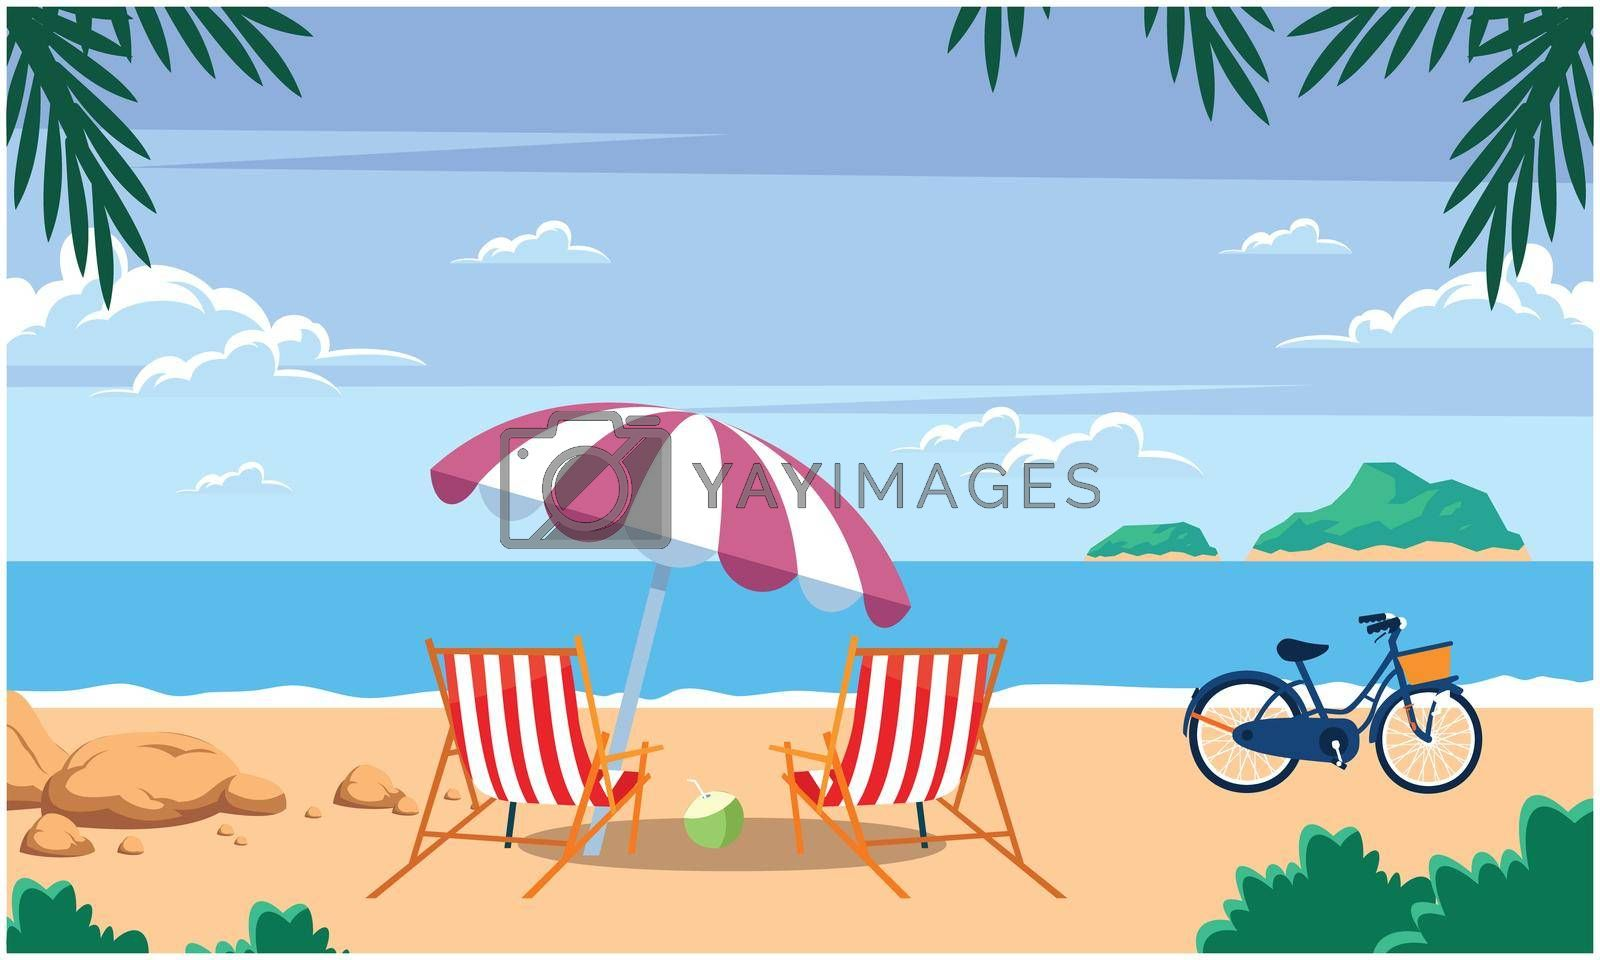 Royalty free image of a sunny view of a beach with chair, umbrella, bicycle and coconut by aanavcreationsplus